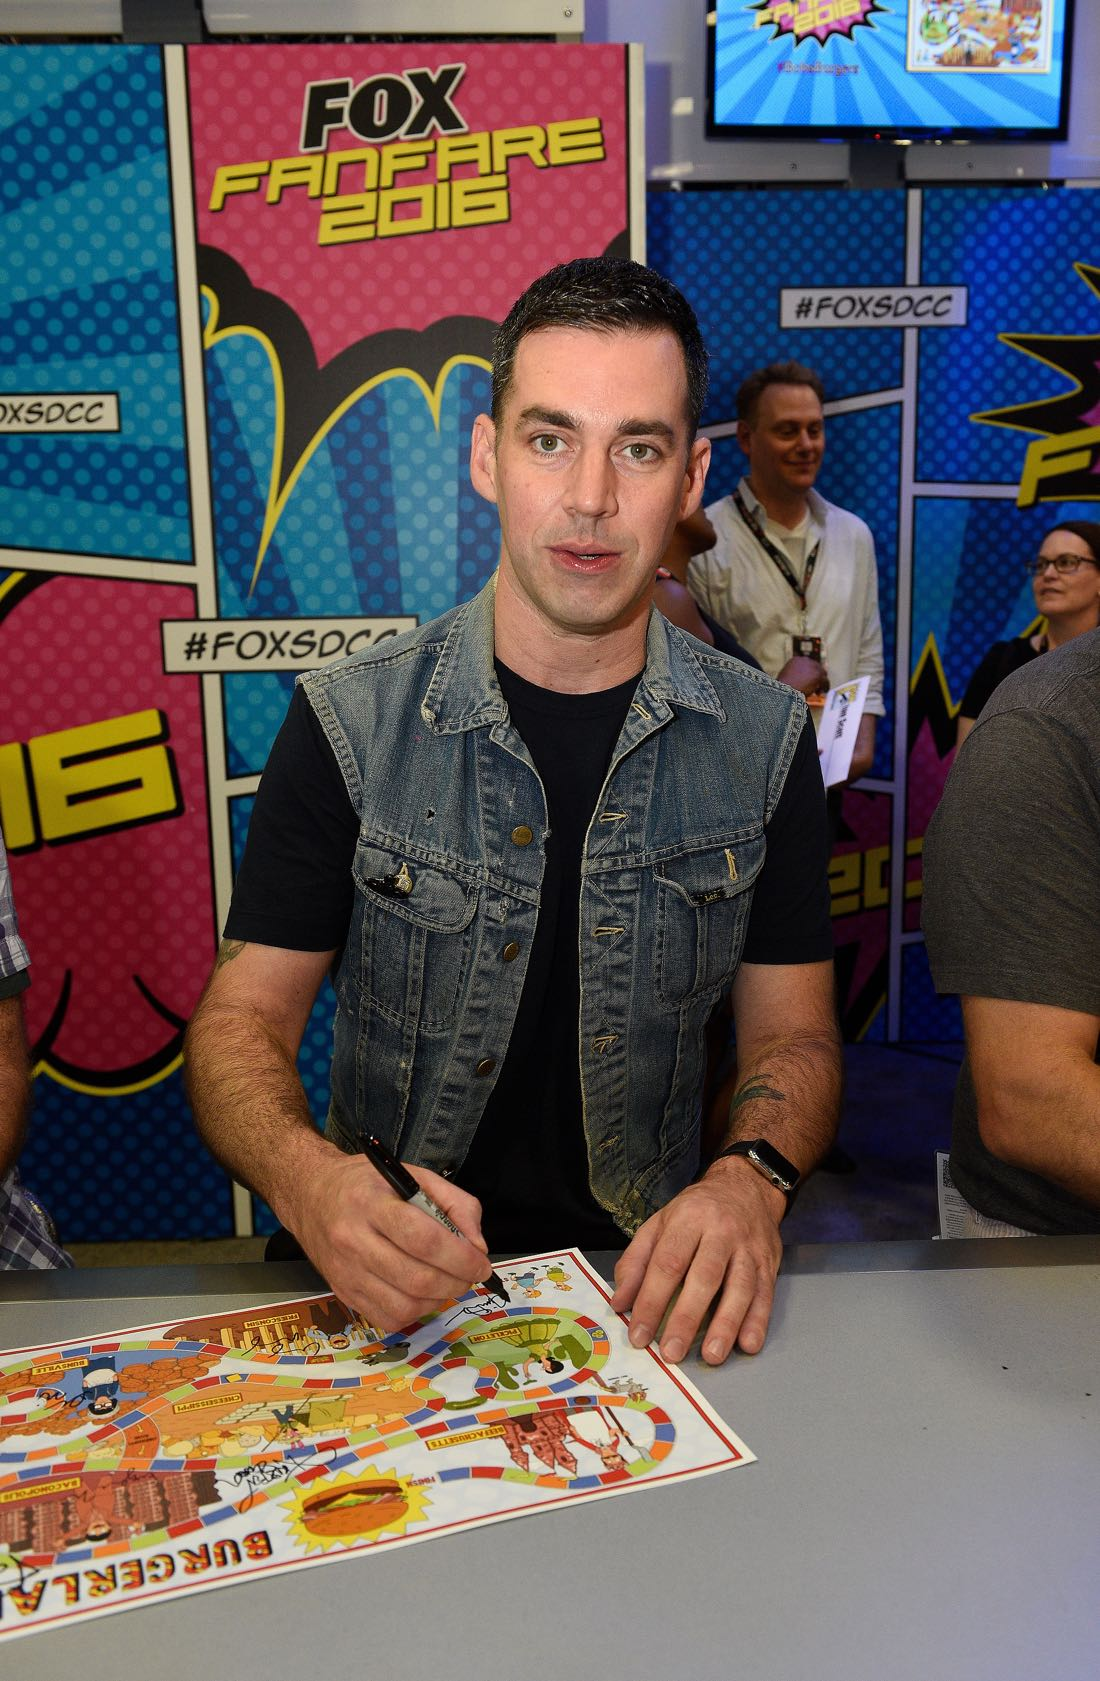 FOX FANFARE AT SAN DIEGO COMIC-CON © 2016: BOB'S BURGERS cast member John Roberts during BOB'S BURGERS booth signing on Friday, July 22 at the FOX FANFARE AT SAN DIEGO COMIC-CON © 2016. CR: Alan Hess/FOX © 2016 FOX BROADCASTING